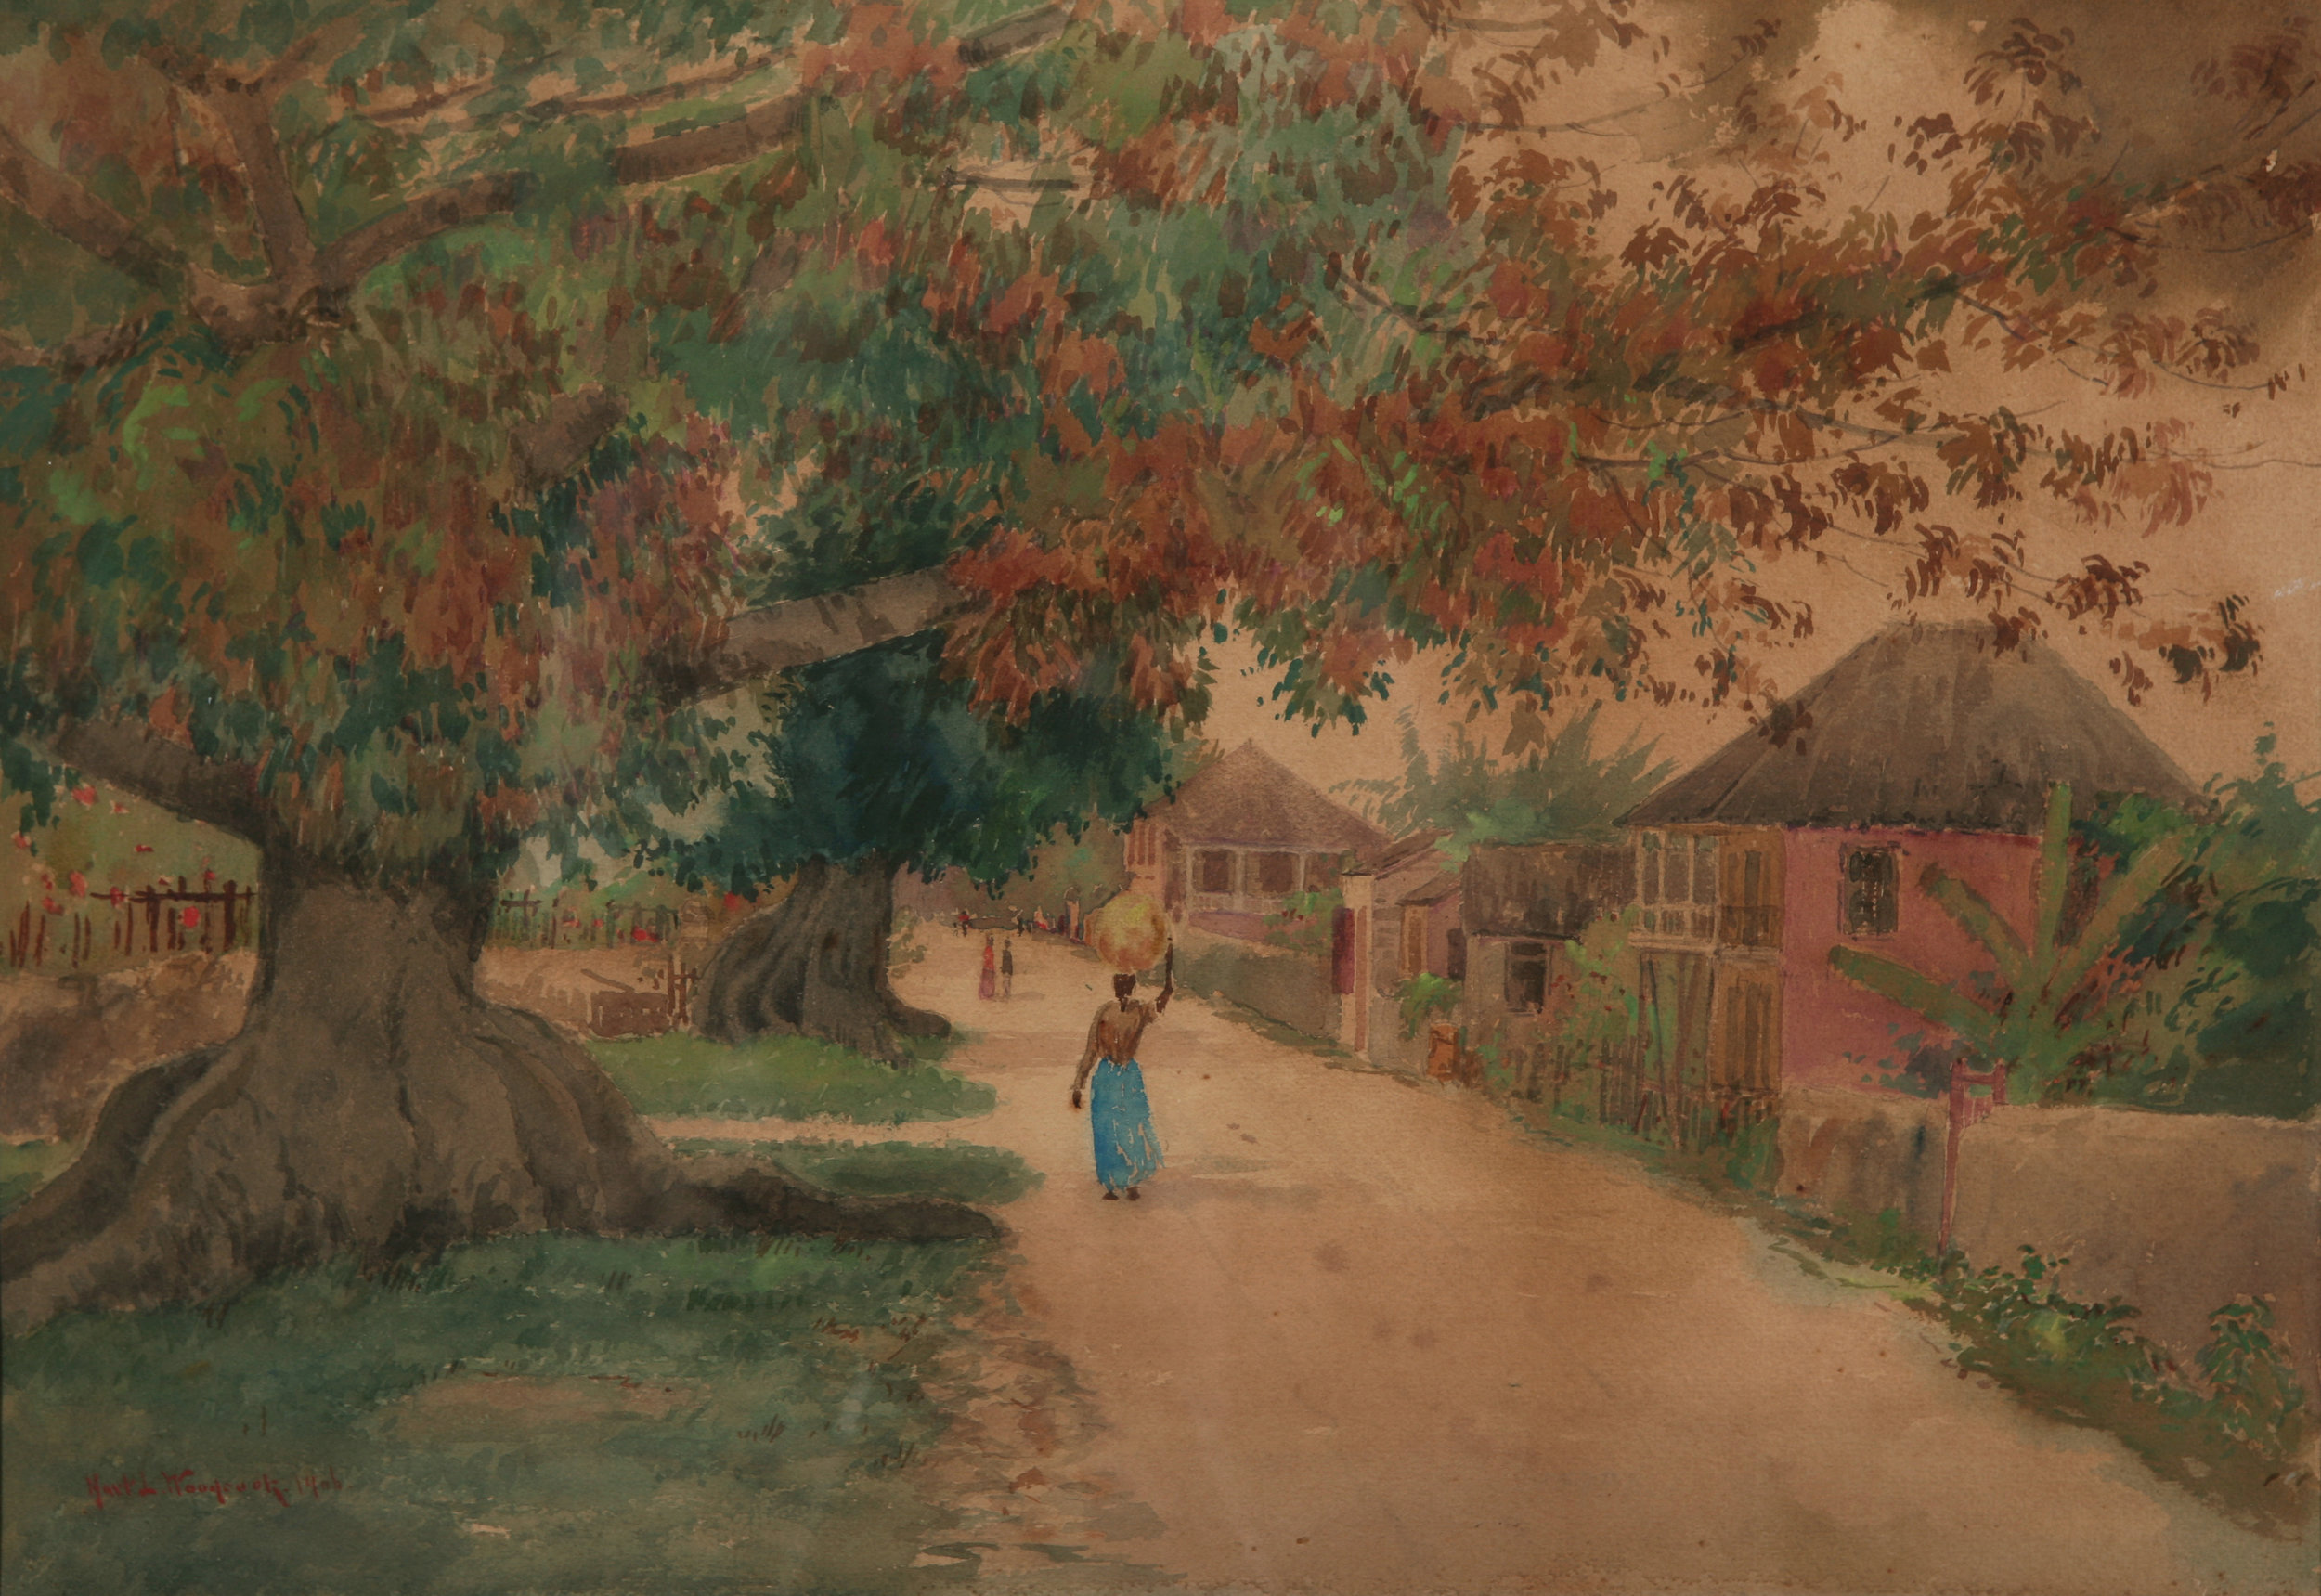 """Silk Cotton Tree, Grants Town"""" (1906). Harwell Leon Woodcock, watercolour on paper, 10 x 14. Image courtesy of the Dawn Davies Collection"""